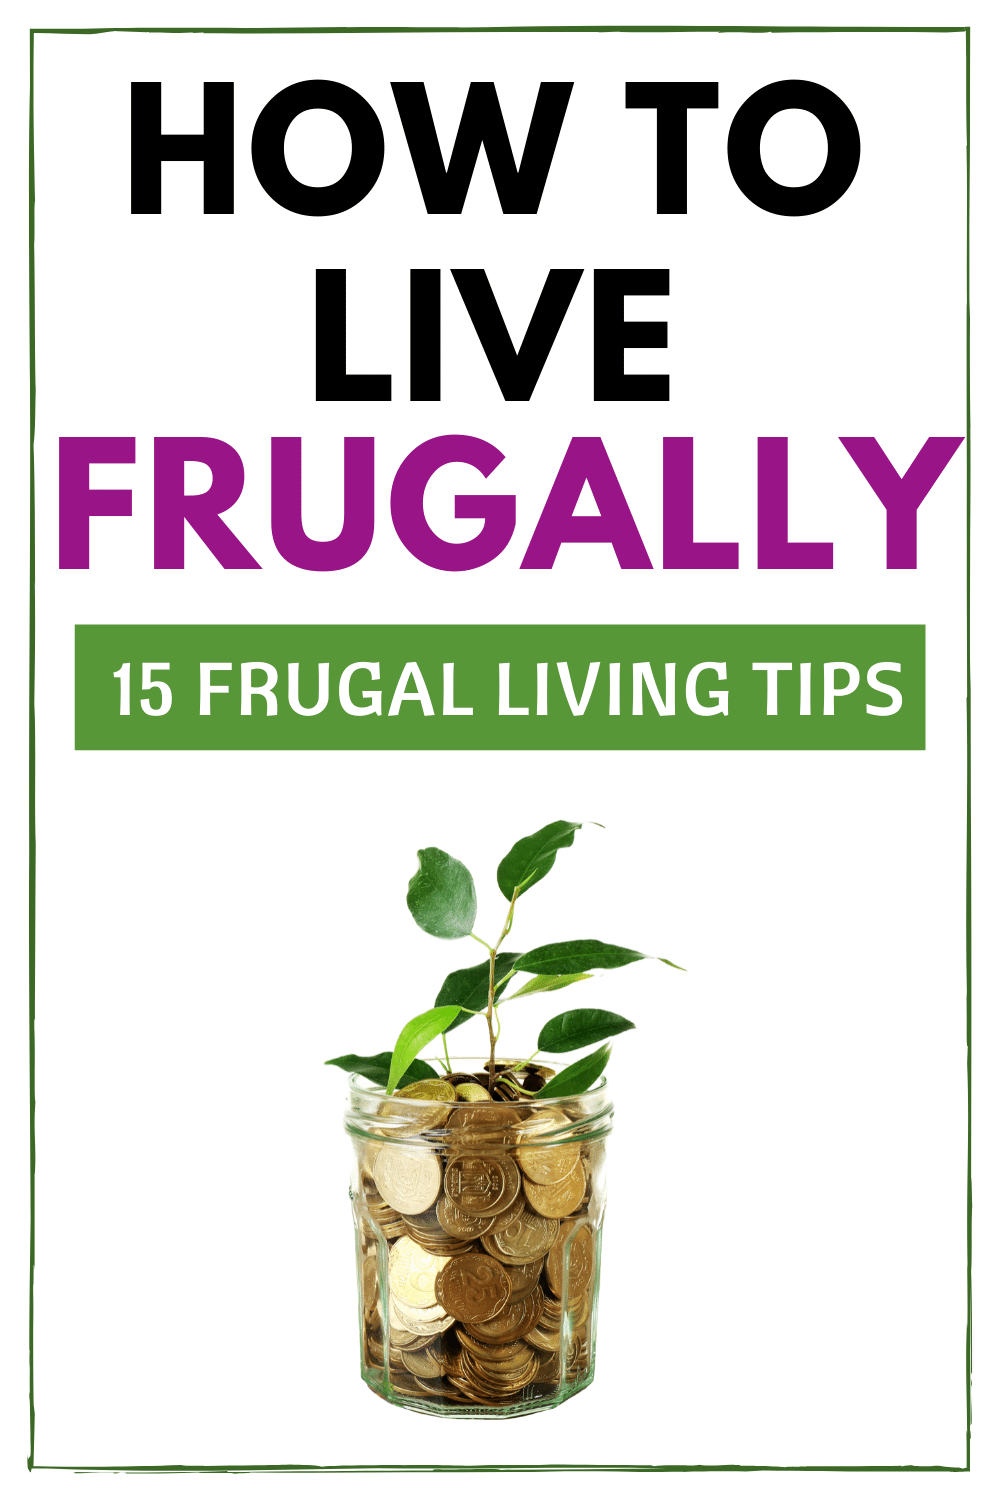 How To Live Frugally with our best frugal living tips